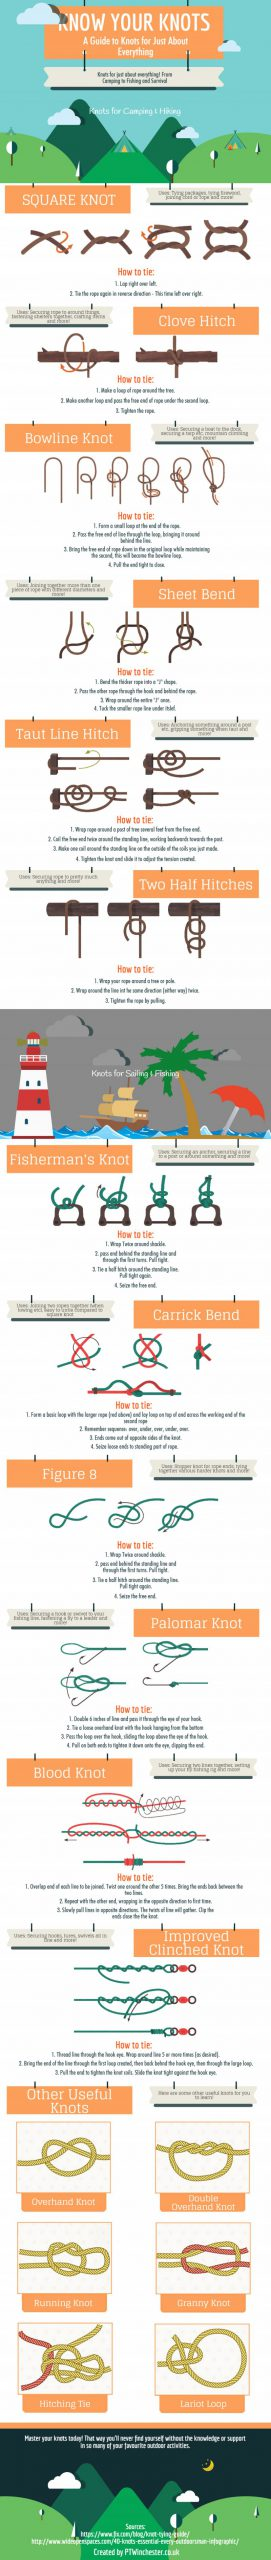 Know Your Knots Infographic